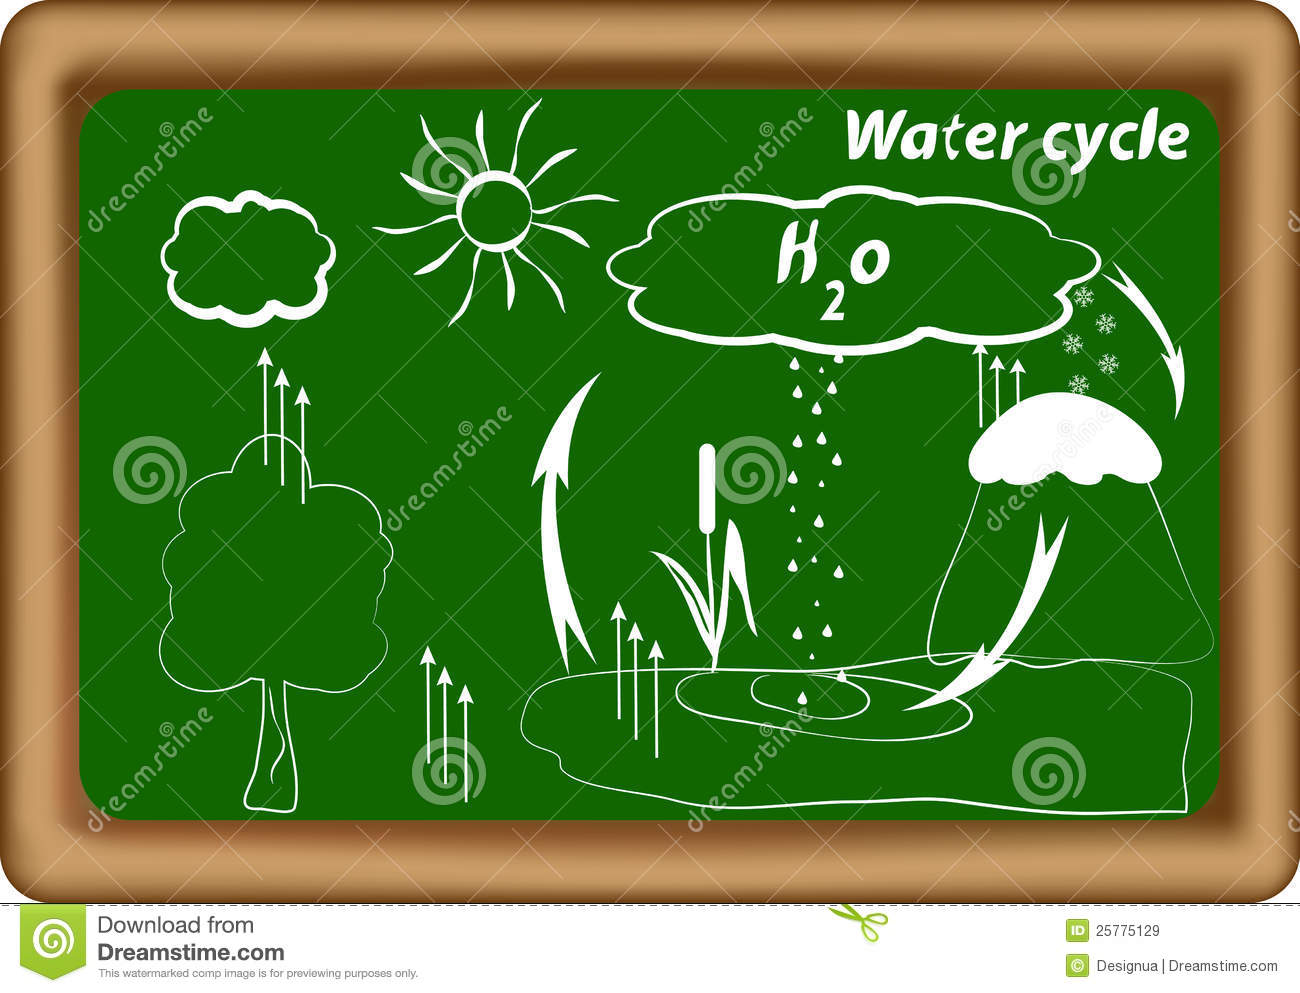 Water Cycle Hydrological Cycle H2o Cycle Royalty Free Stock Images